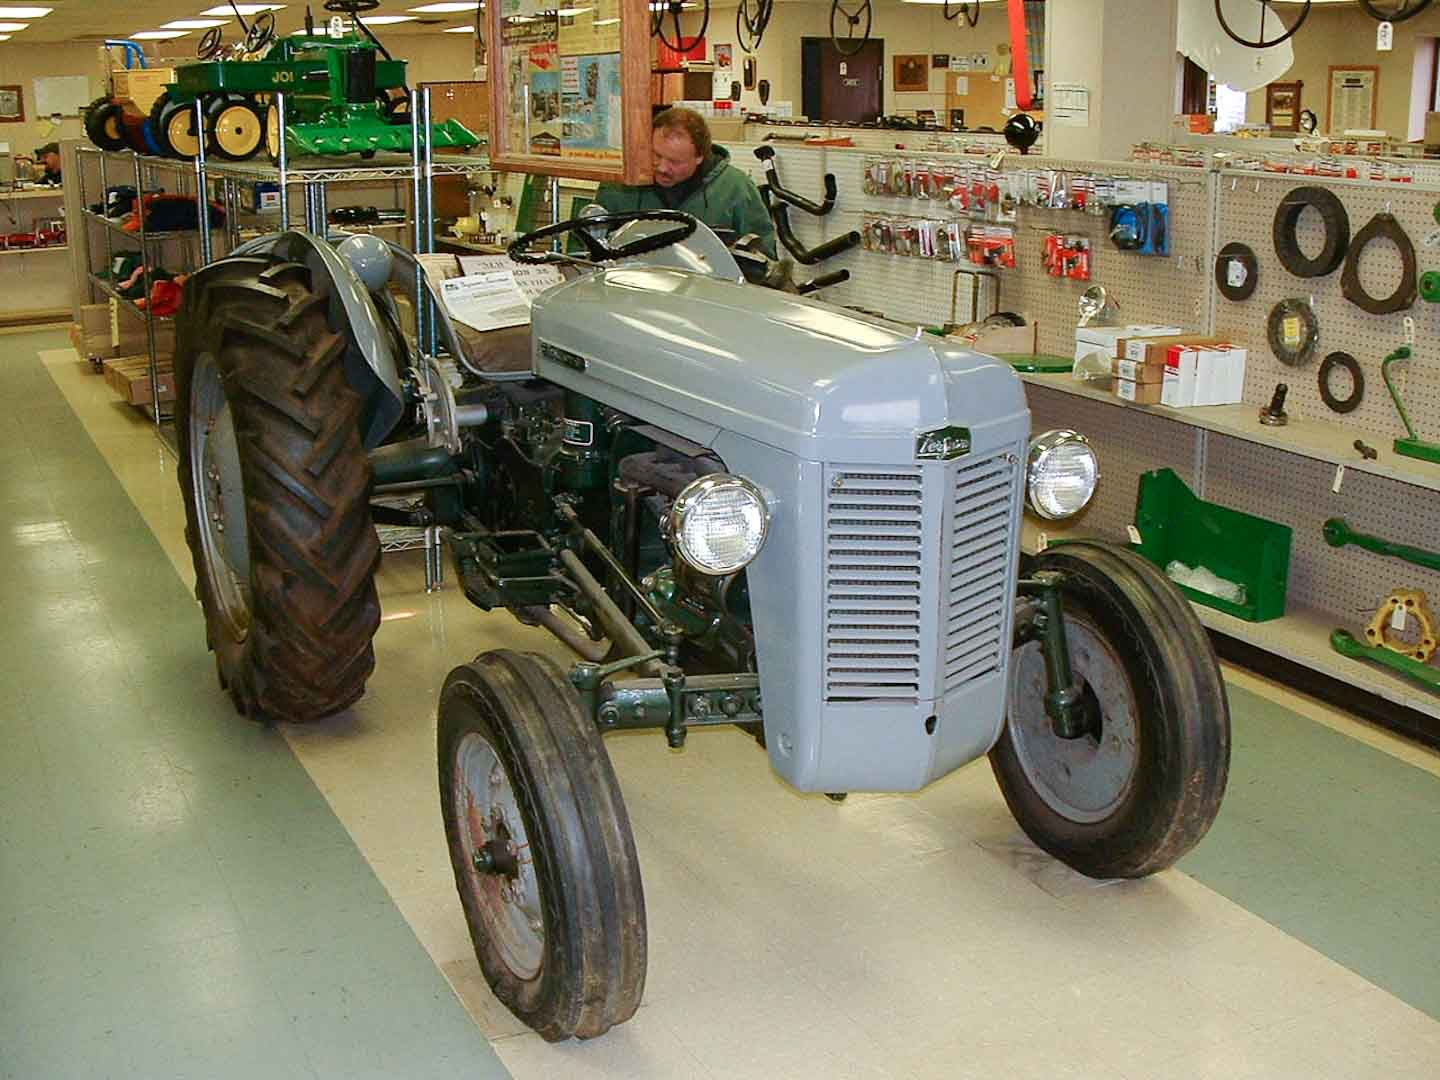 Wengers Of Myerstown >> New To 35 At Wengers Of Myerstown Ferguson Enthusiasts Of